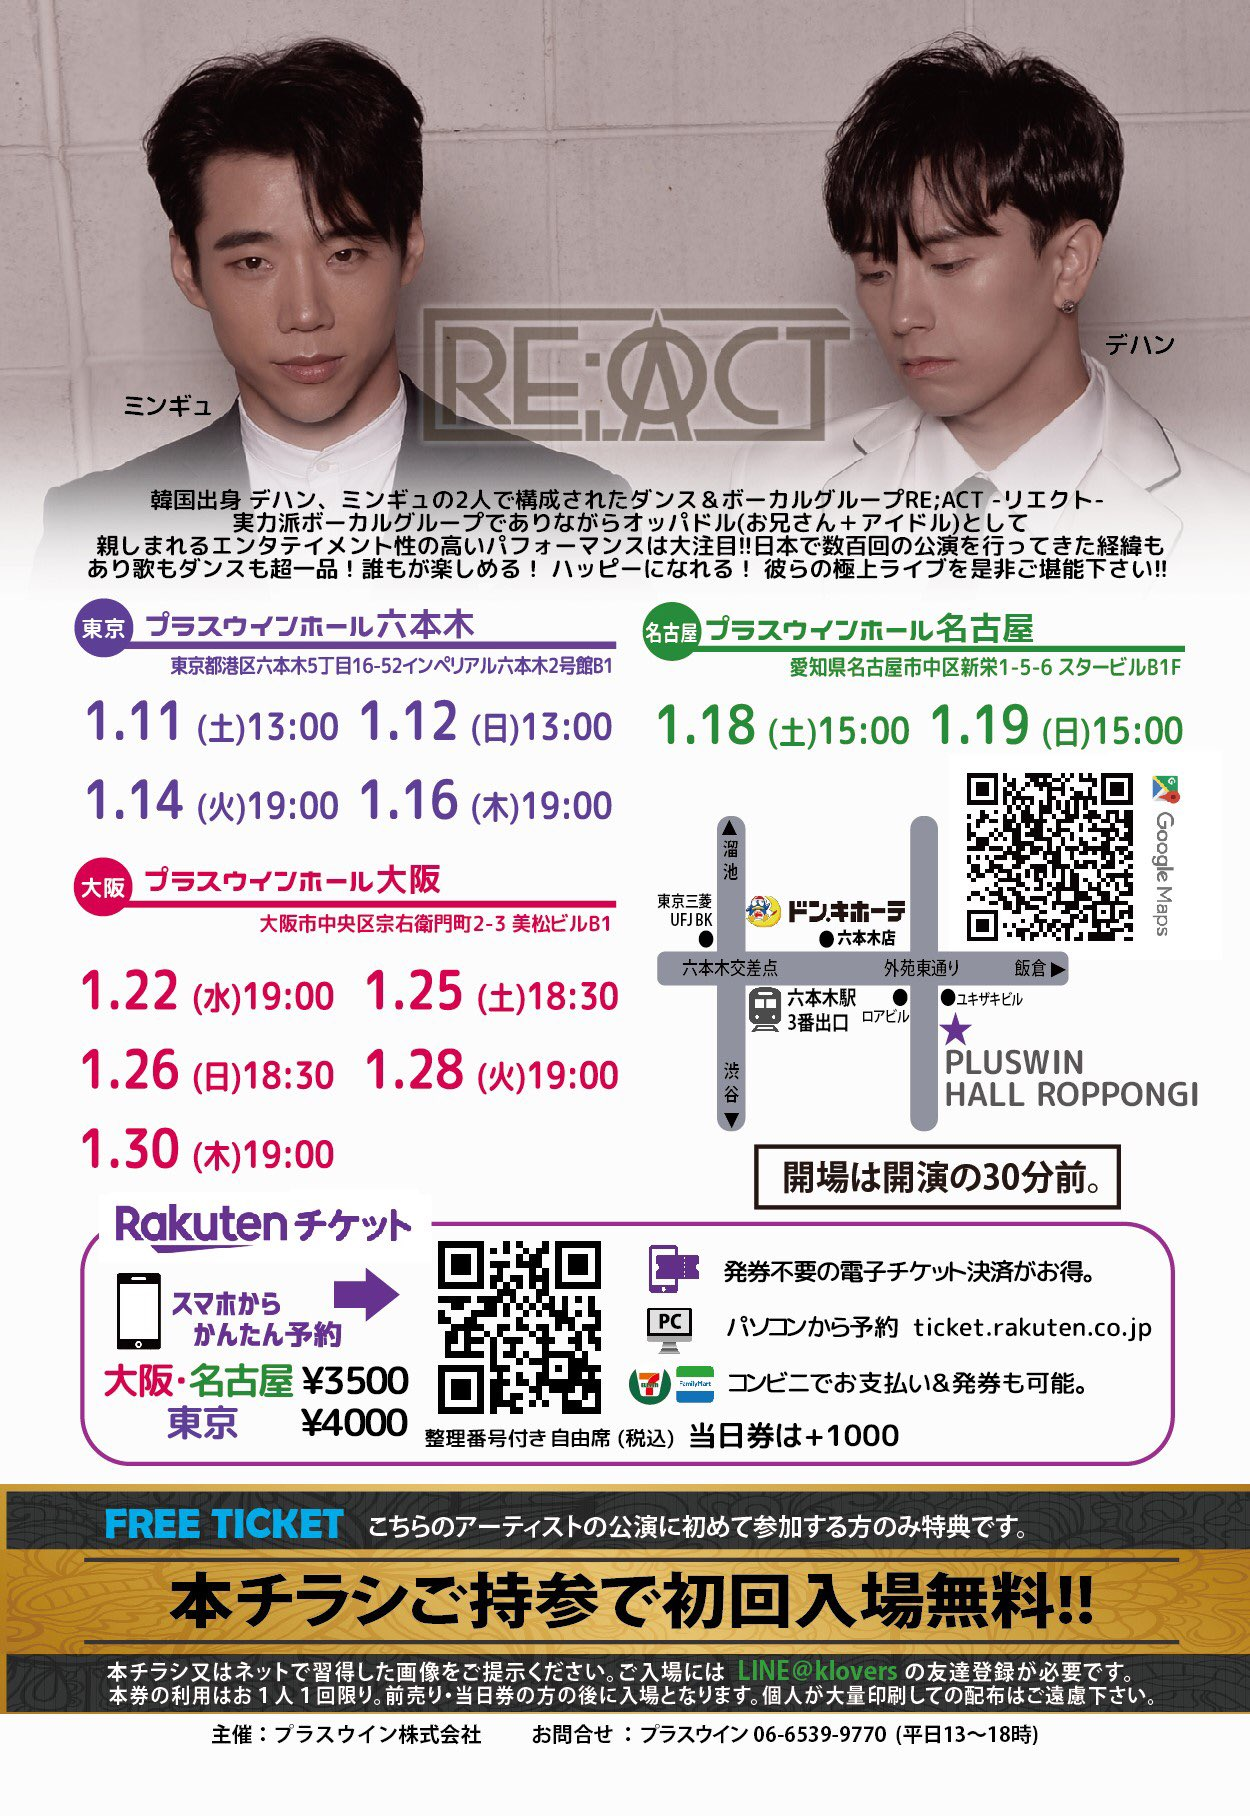 RE;ACT 2020年1月